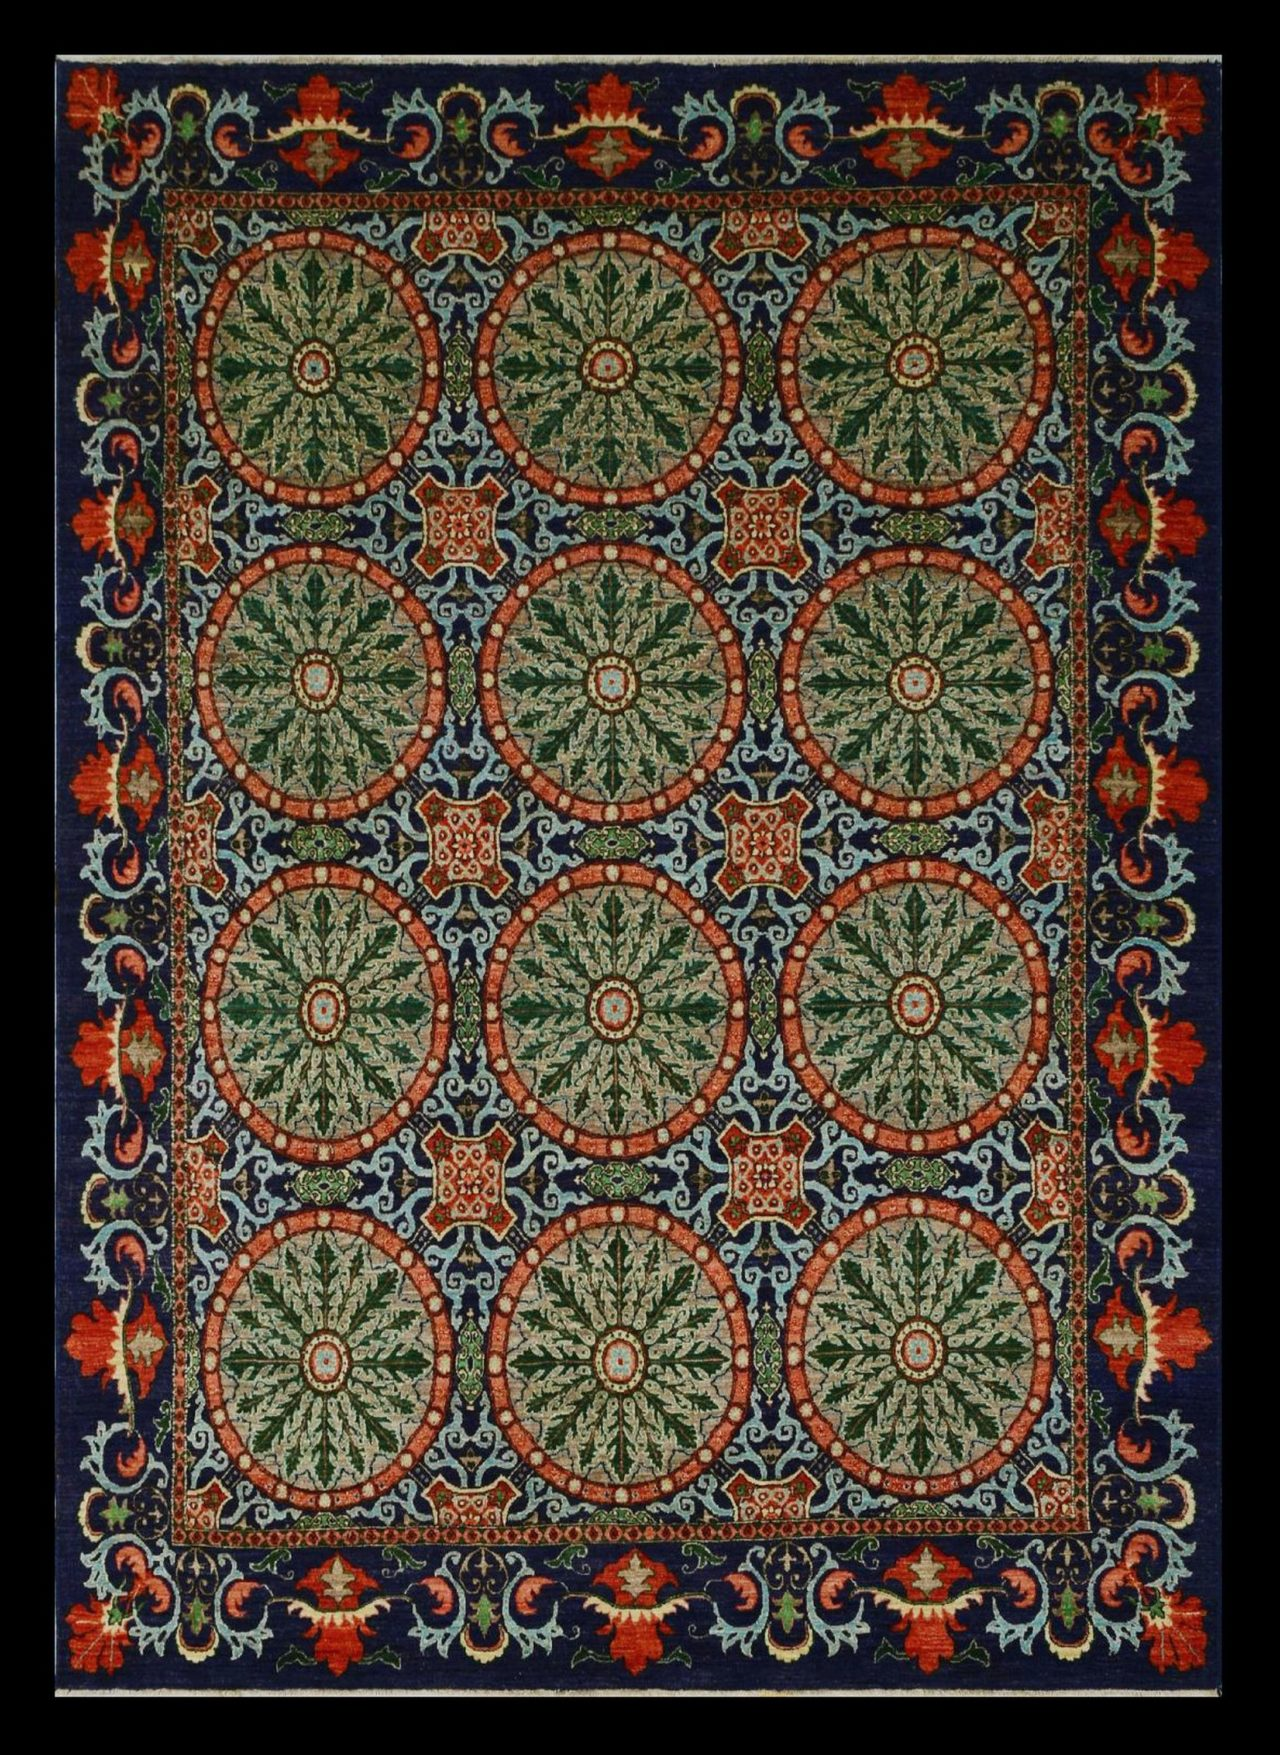 N 9660 PAKISTAN ARTS AND CRAFTS 8 X 10.6